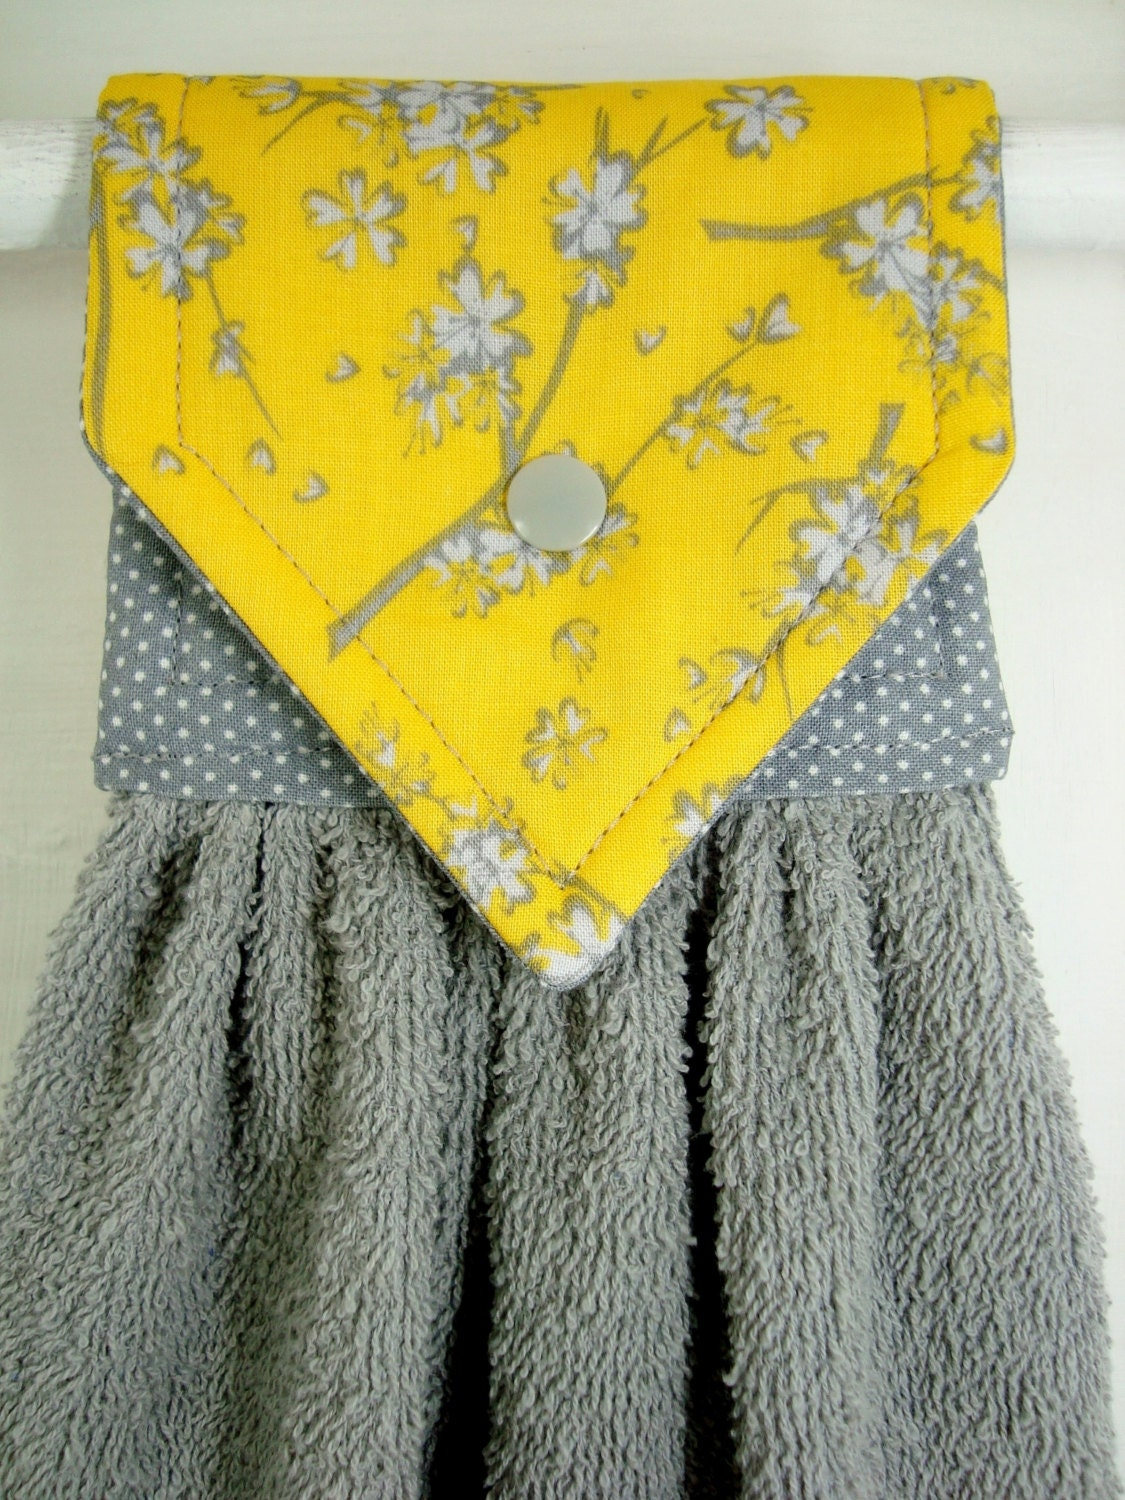 hanging hand towelyellow and gray hand towels grey yellow. Black Bedroom Furniture Sets. Home Design Ideas